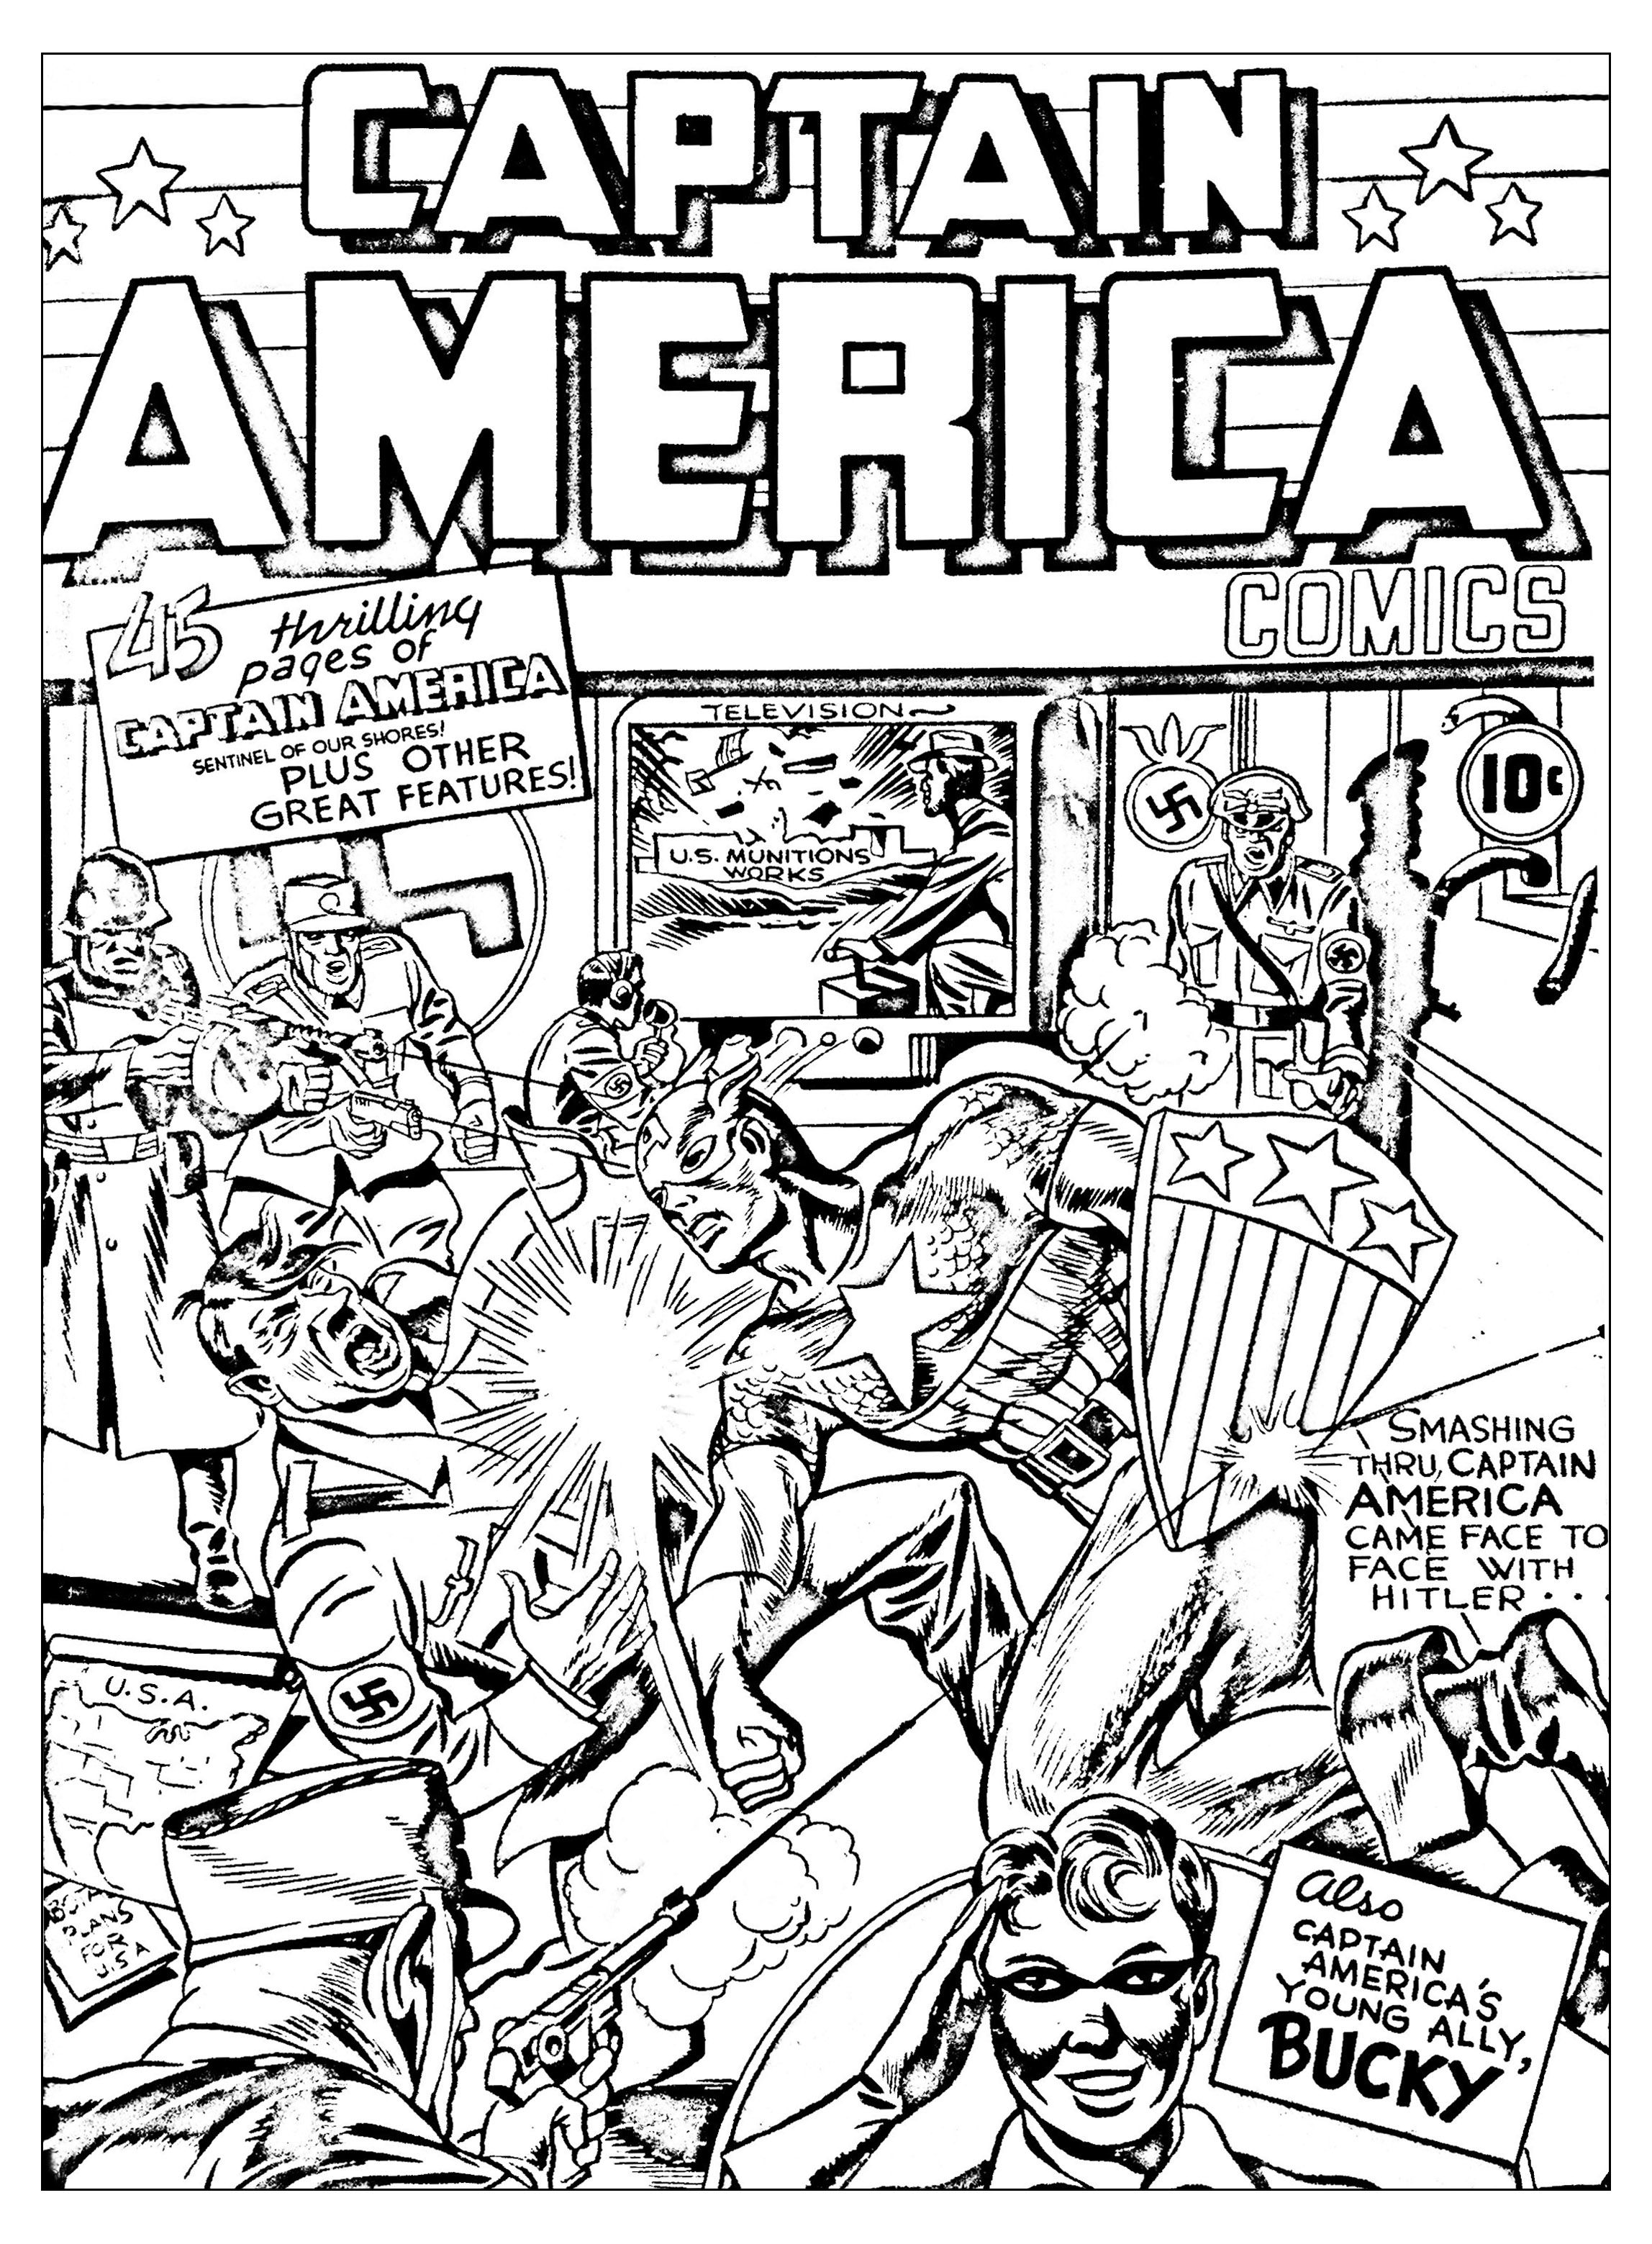 comic book coloring pages Captain america vs hitlerFrom the gallery : Books | coloring pages  comic book coloring pages